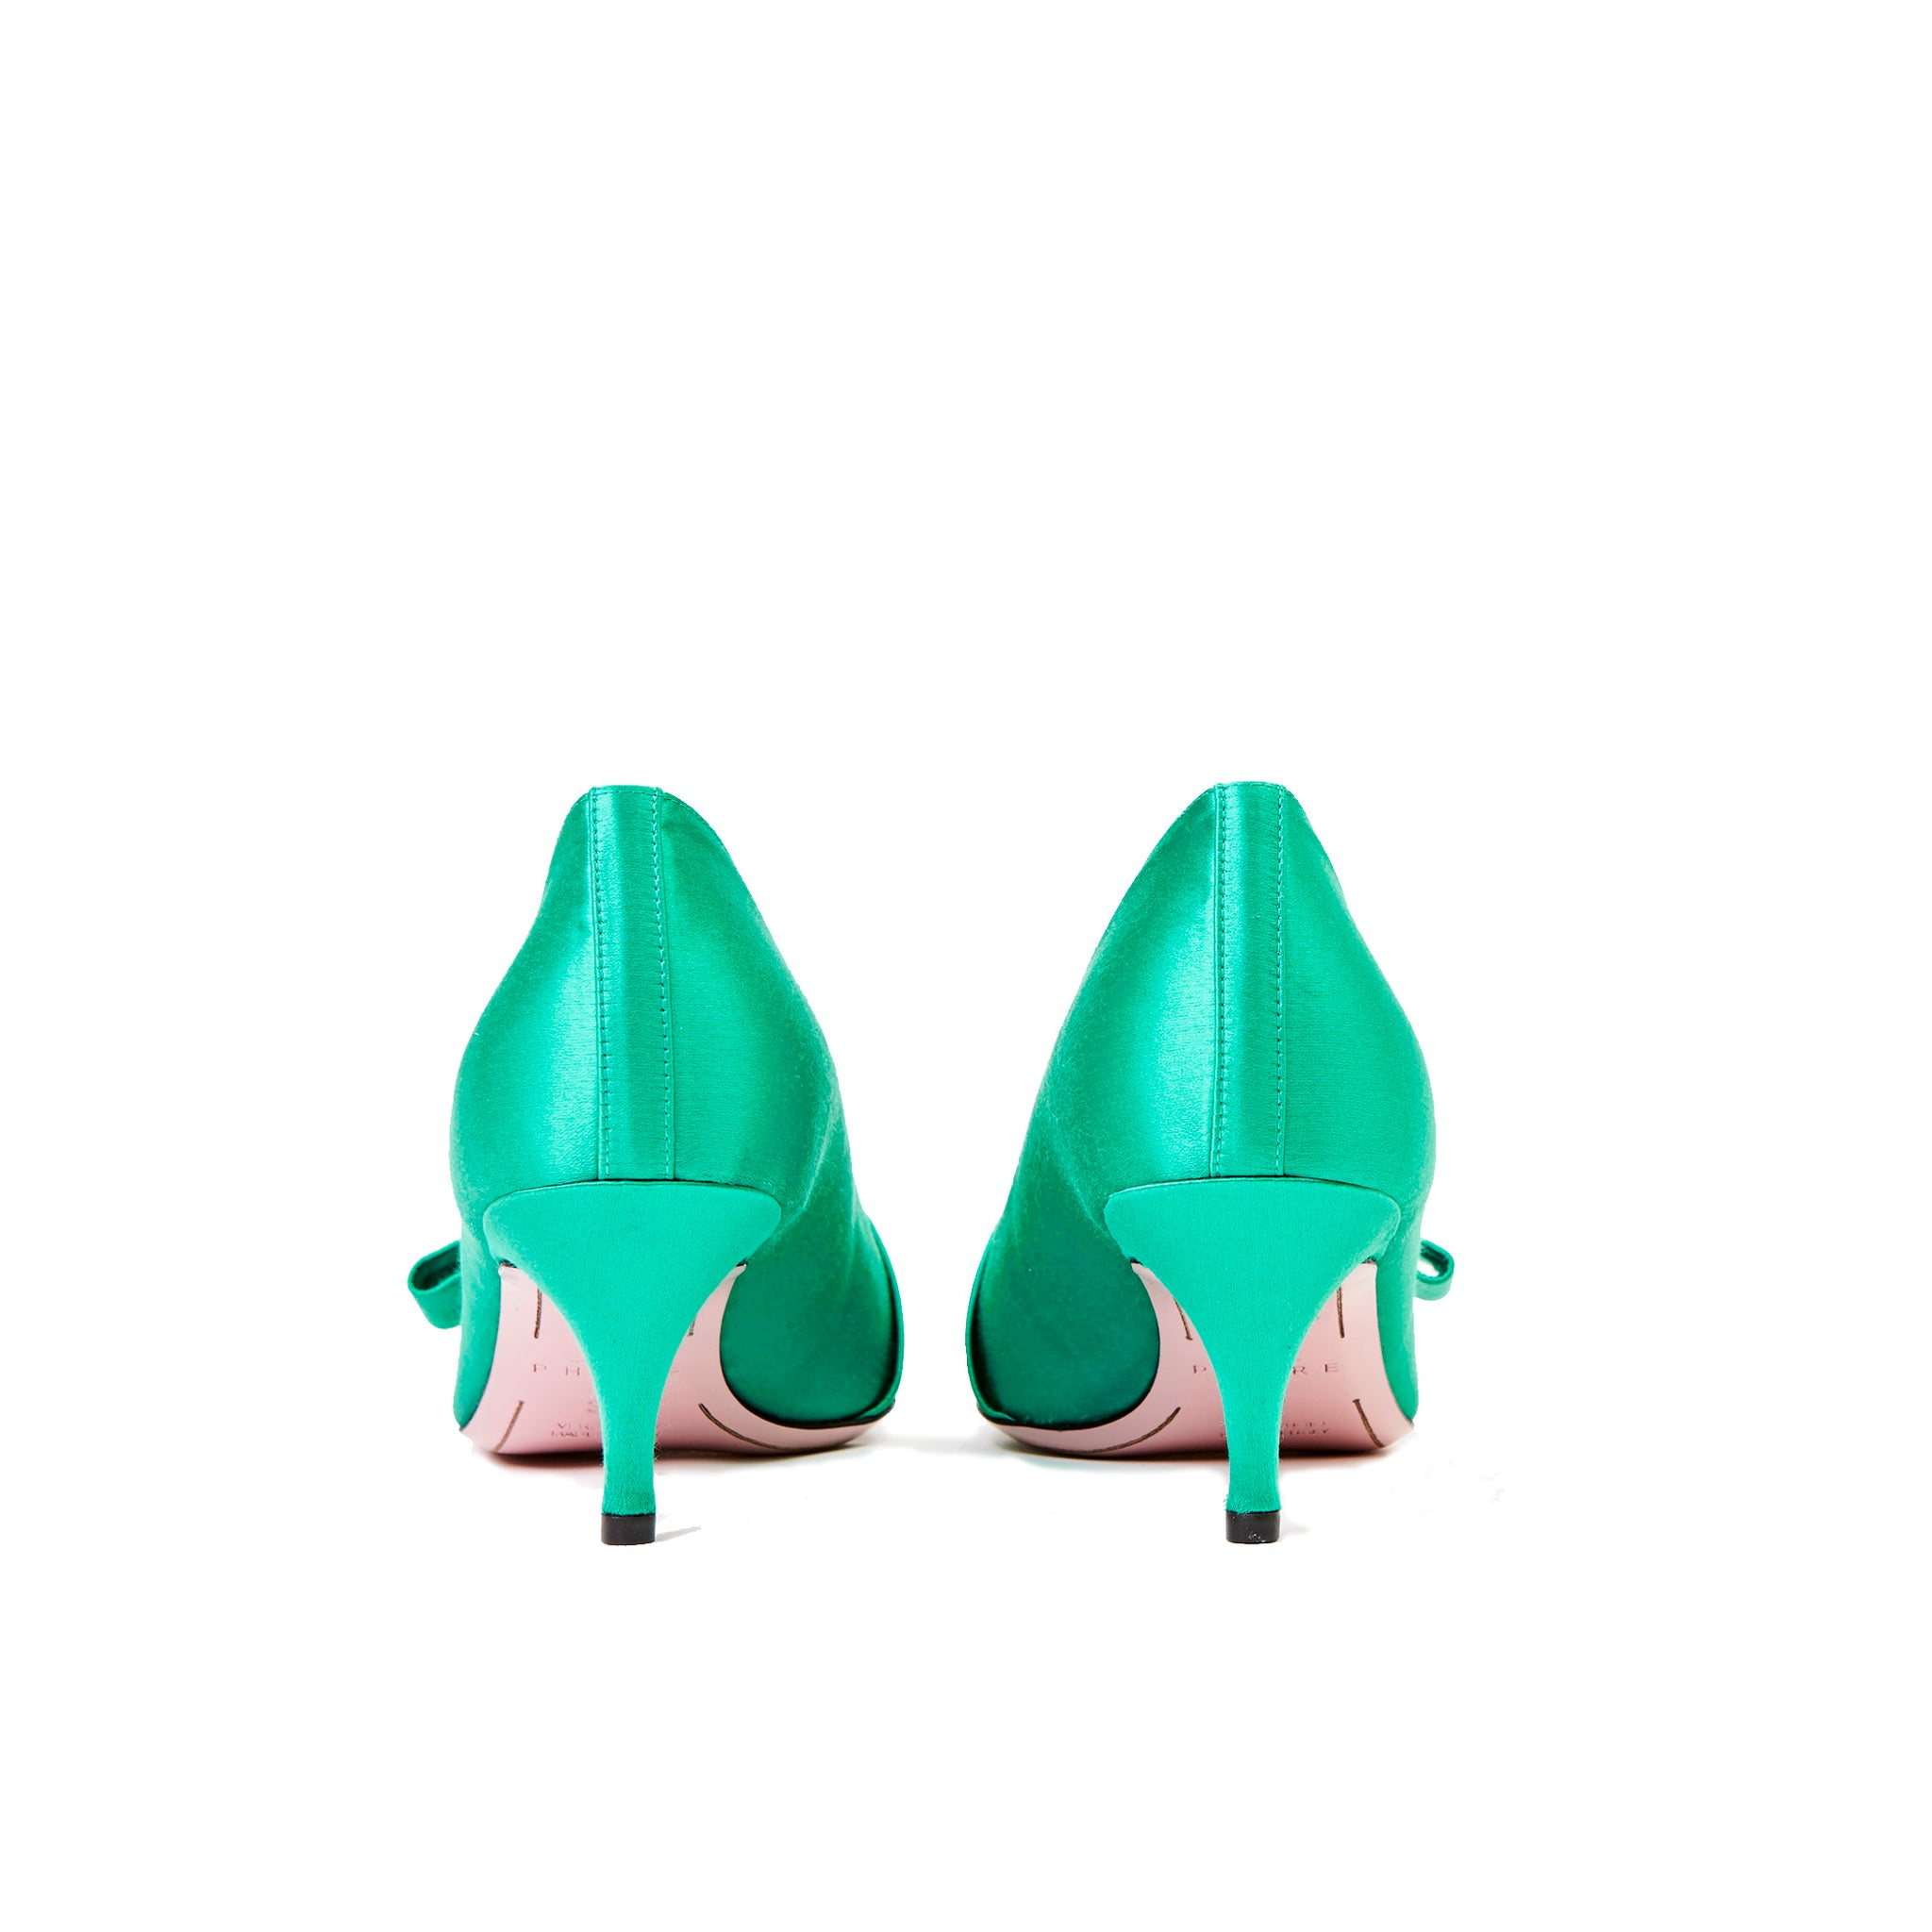 Phare studded kitten heel in verde silk satin with black and gold studs back view